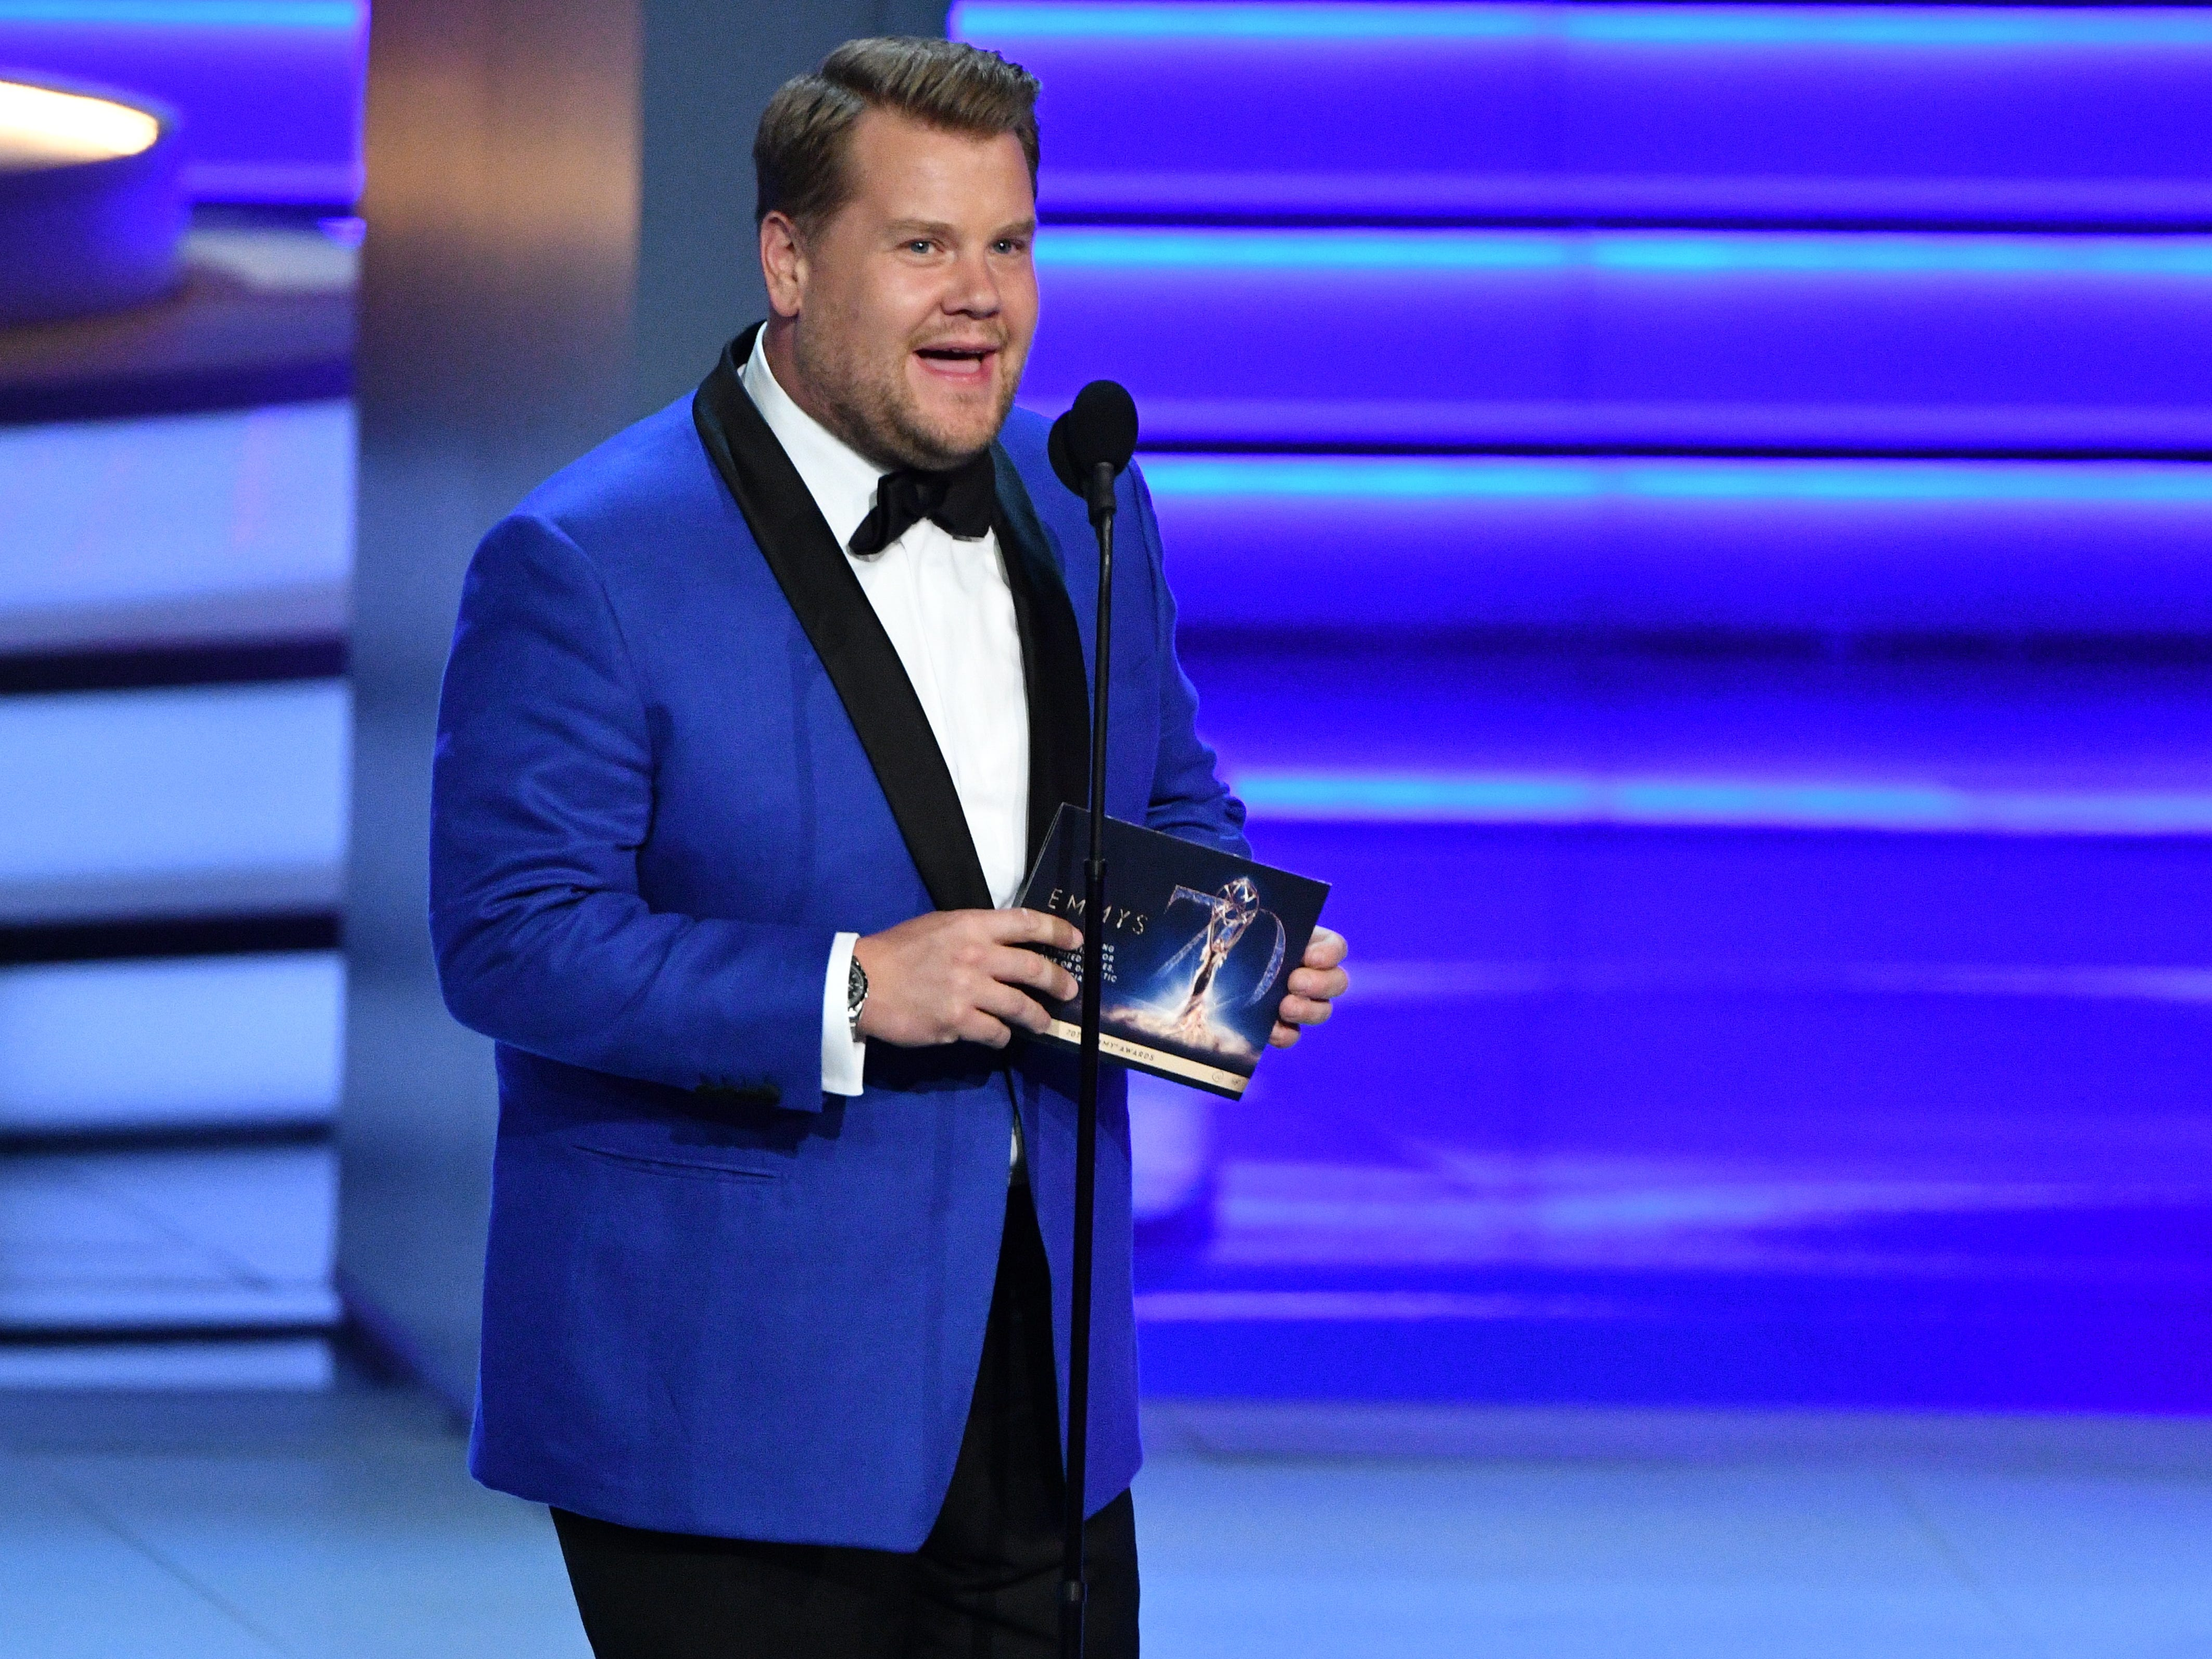 James Corden presents the award for outstanding directing for a limited series.